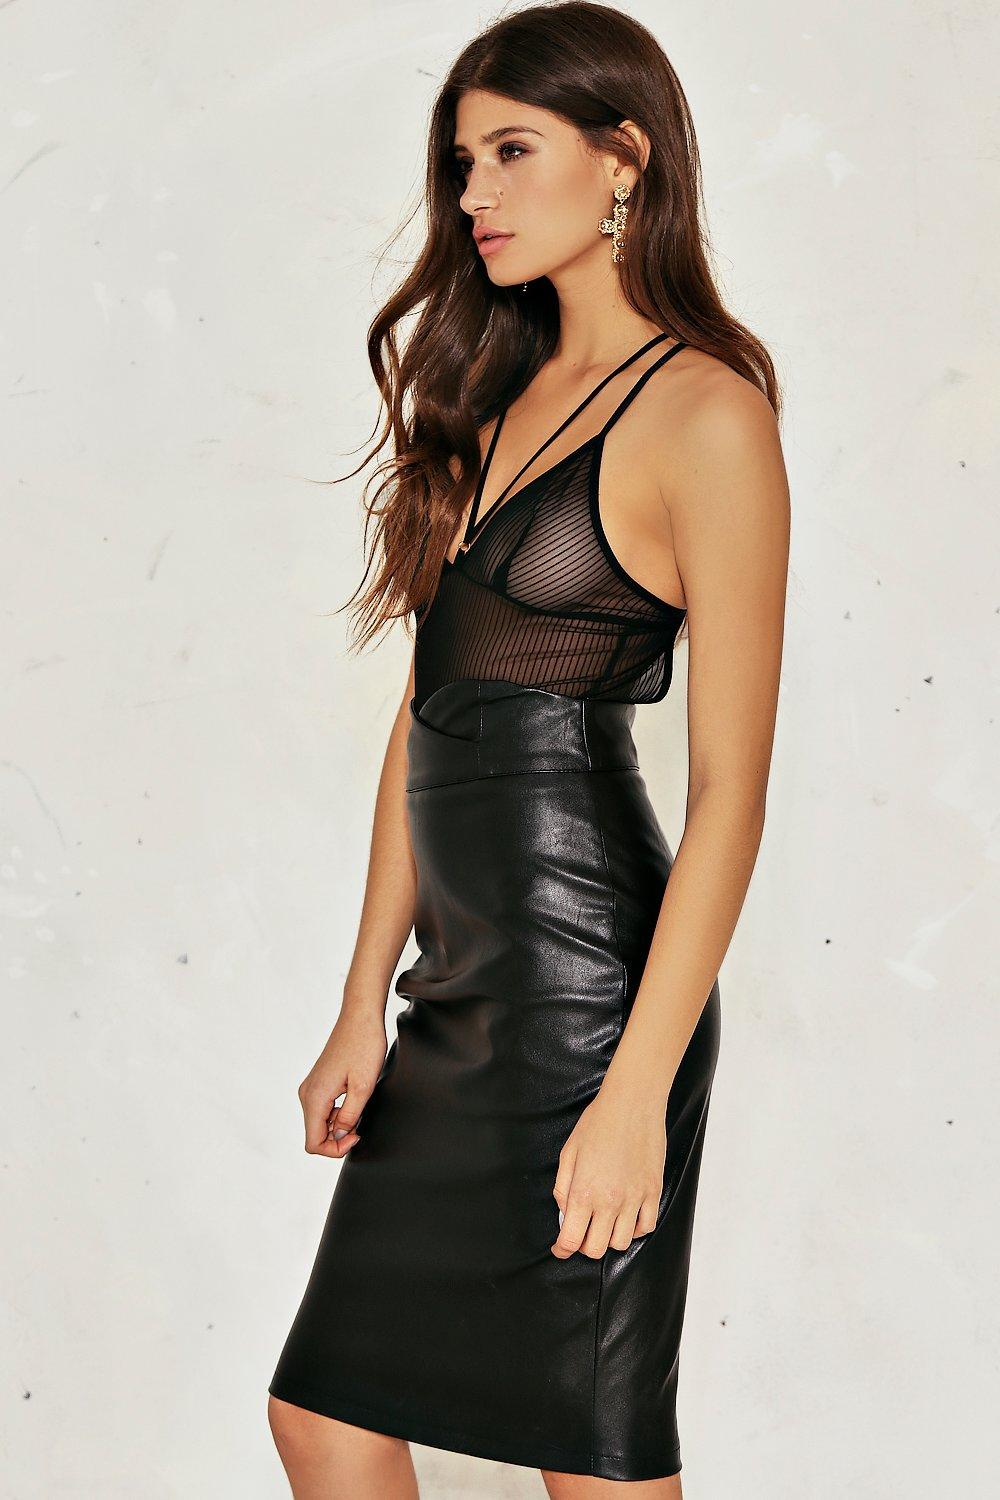 19a707b85354 Abbie High-Waisted Faux Leather Skirt | Shop Clothes at Nasty Gal!